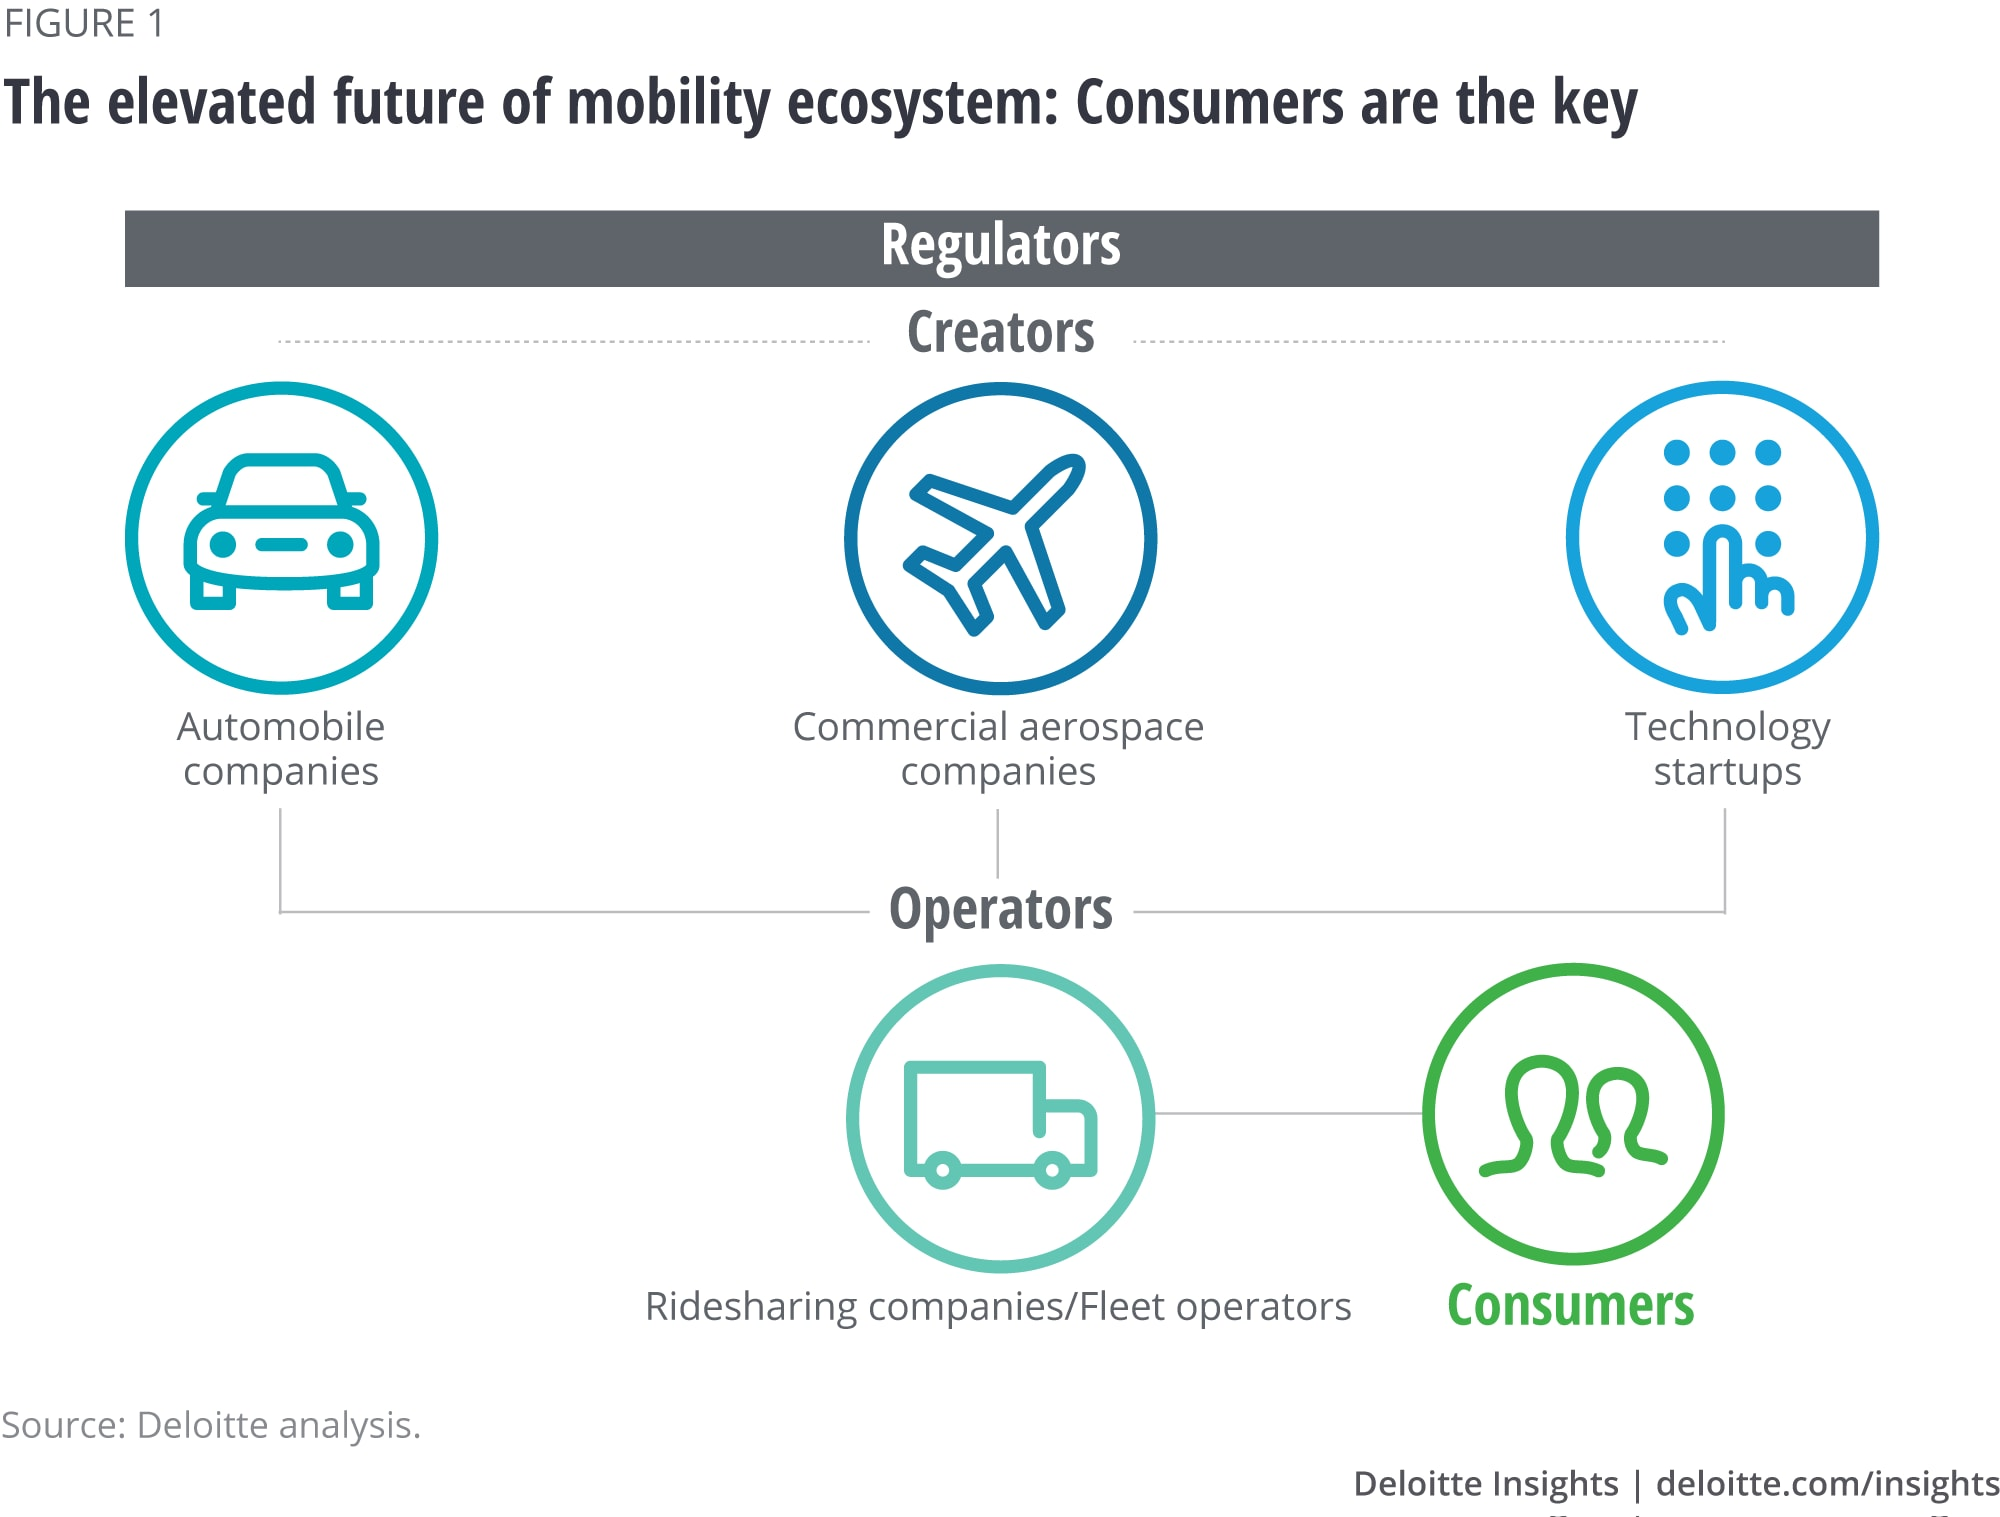 The elevated future of mobility ecosystem: Consumers are the key